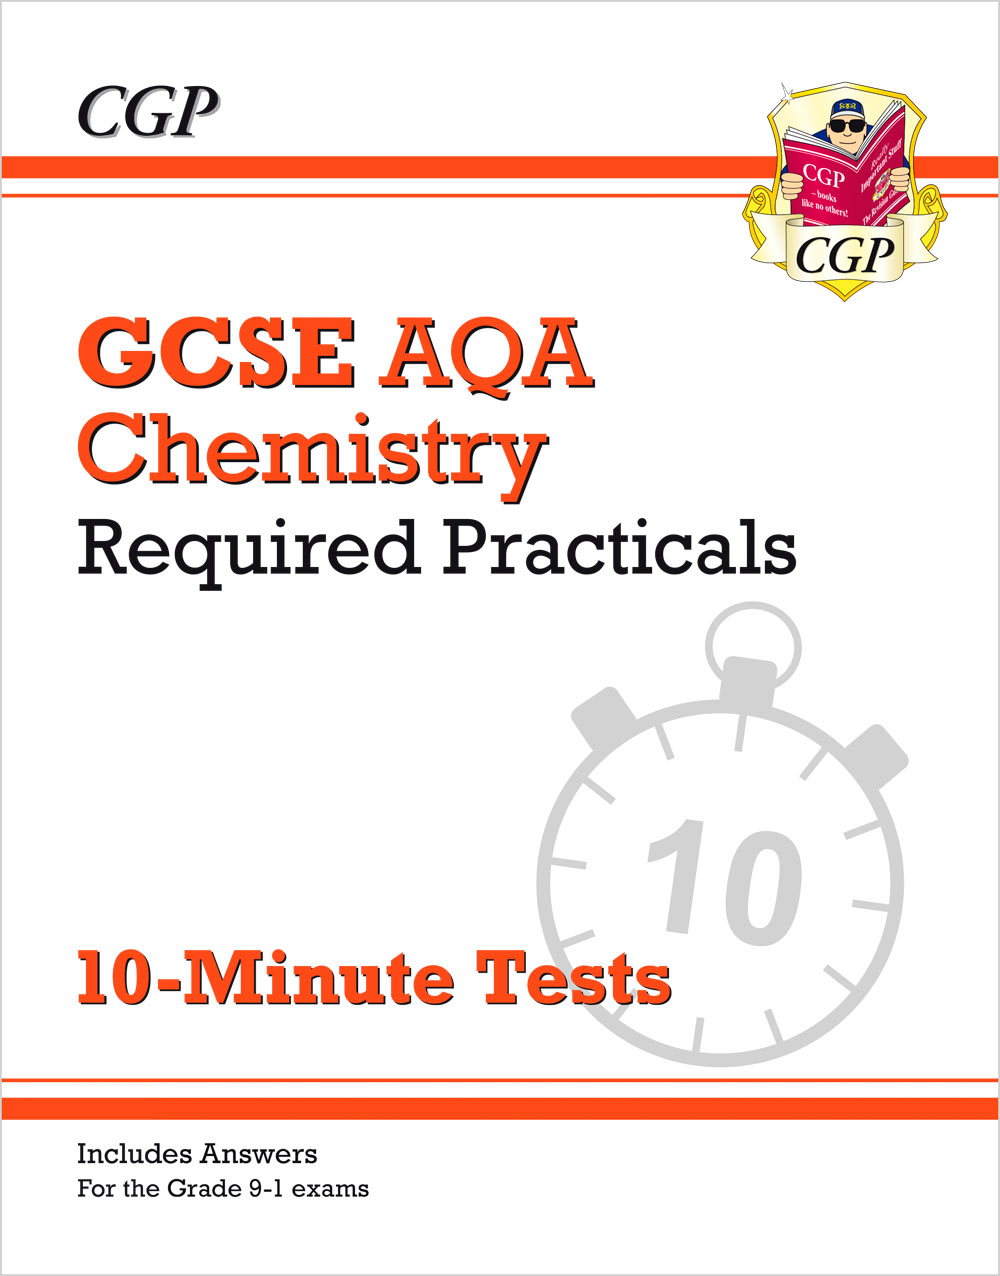 CAPRXP41 - New Grade 9-1 GCSE Chemistry: AQA Required Practicals 10-Minute Tests (includes Answers)